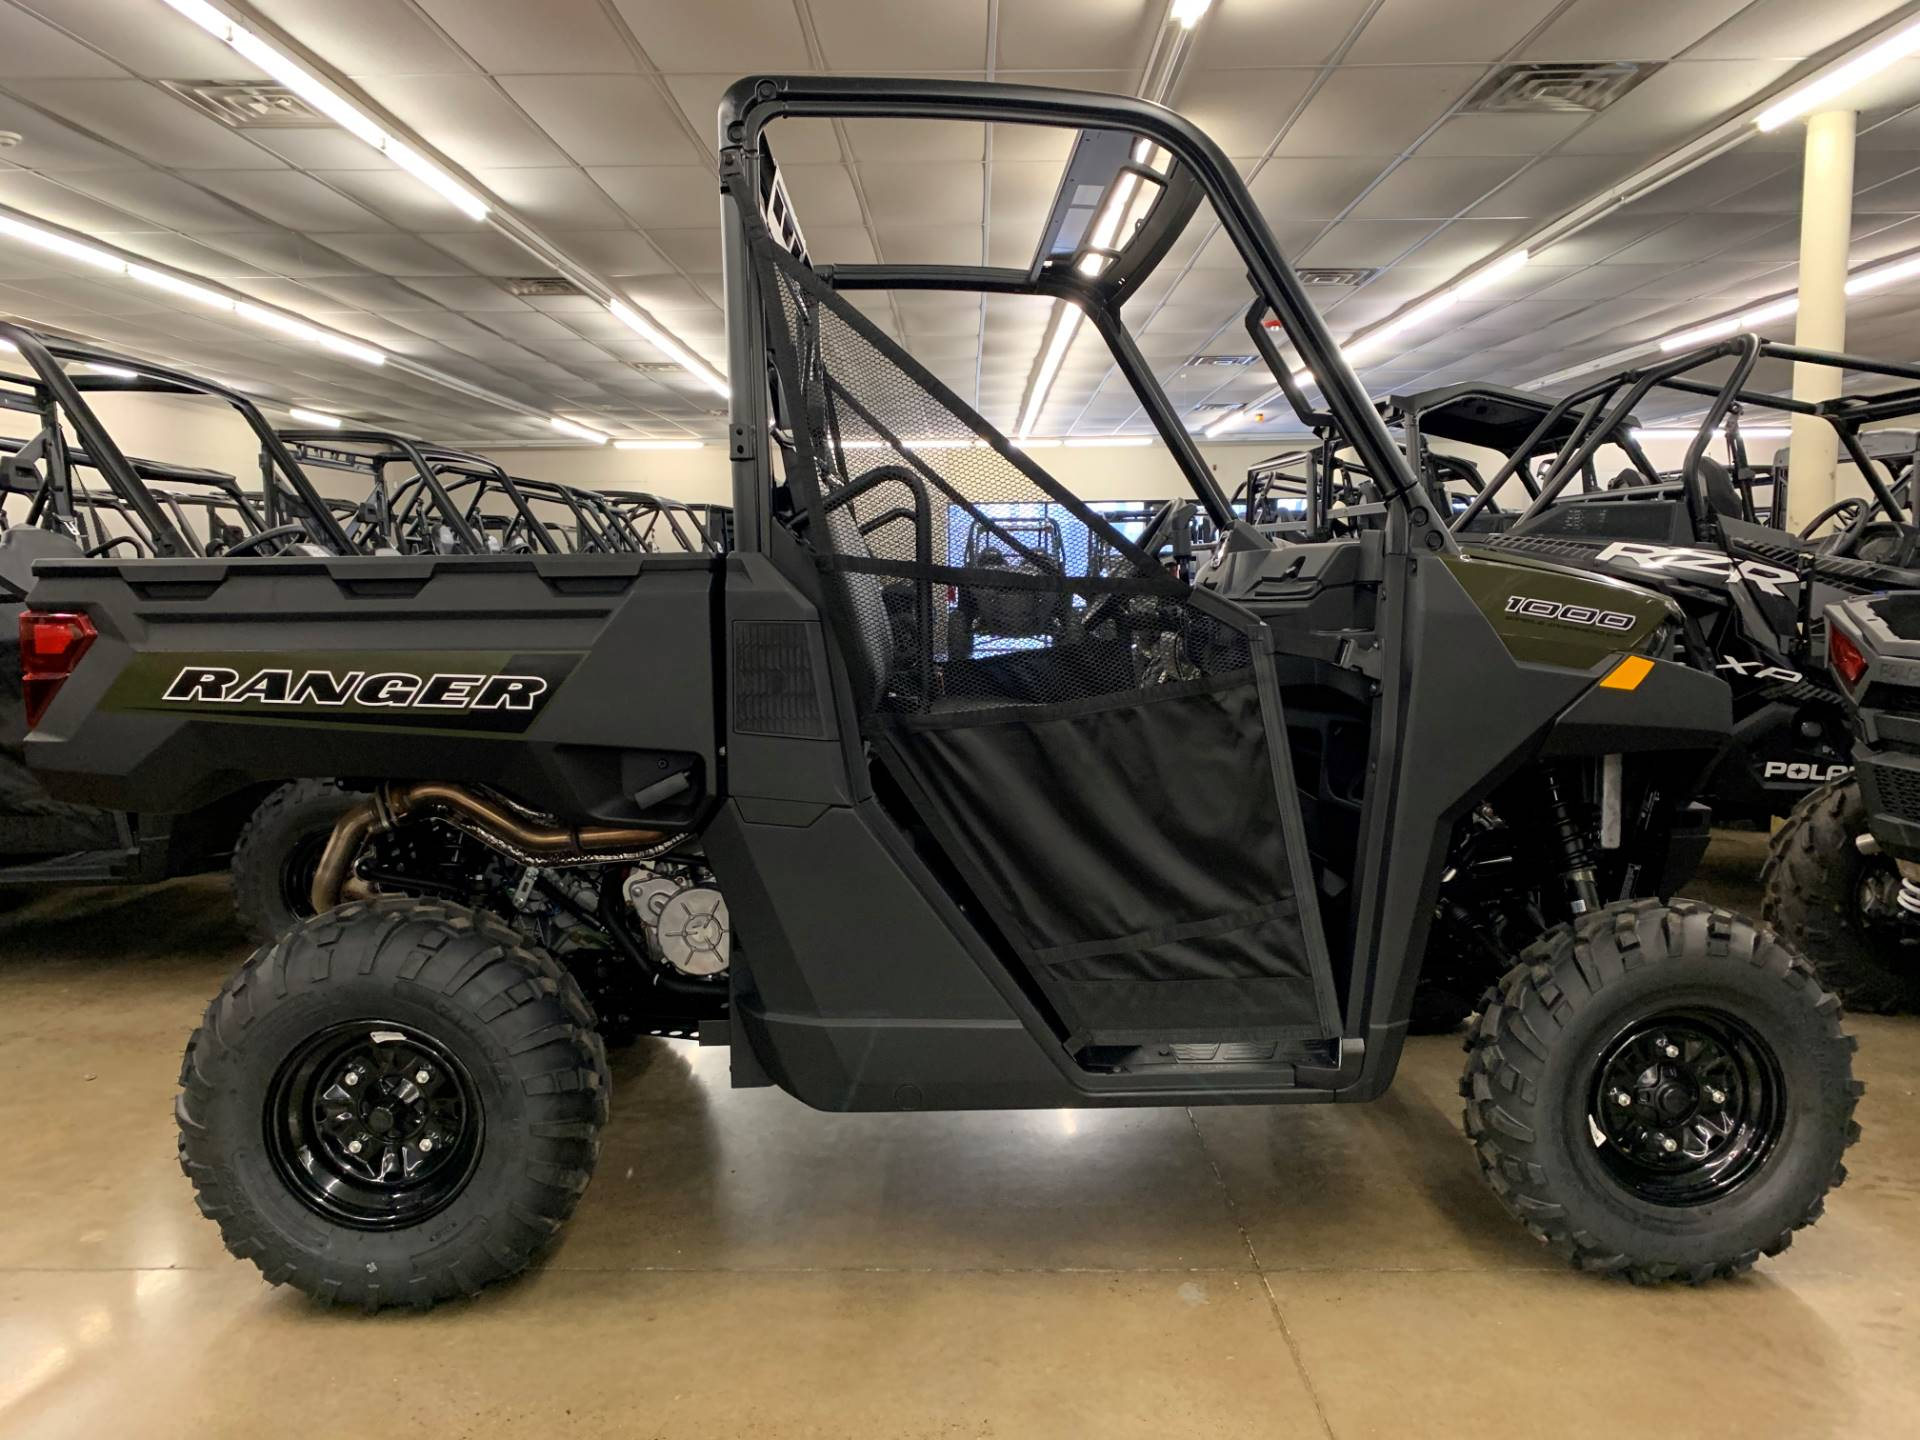 2020 Polaris Ranger 1000 in Chicora, Pennsylvania - Photo 2